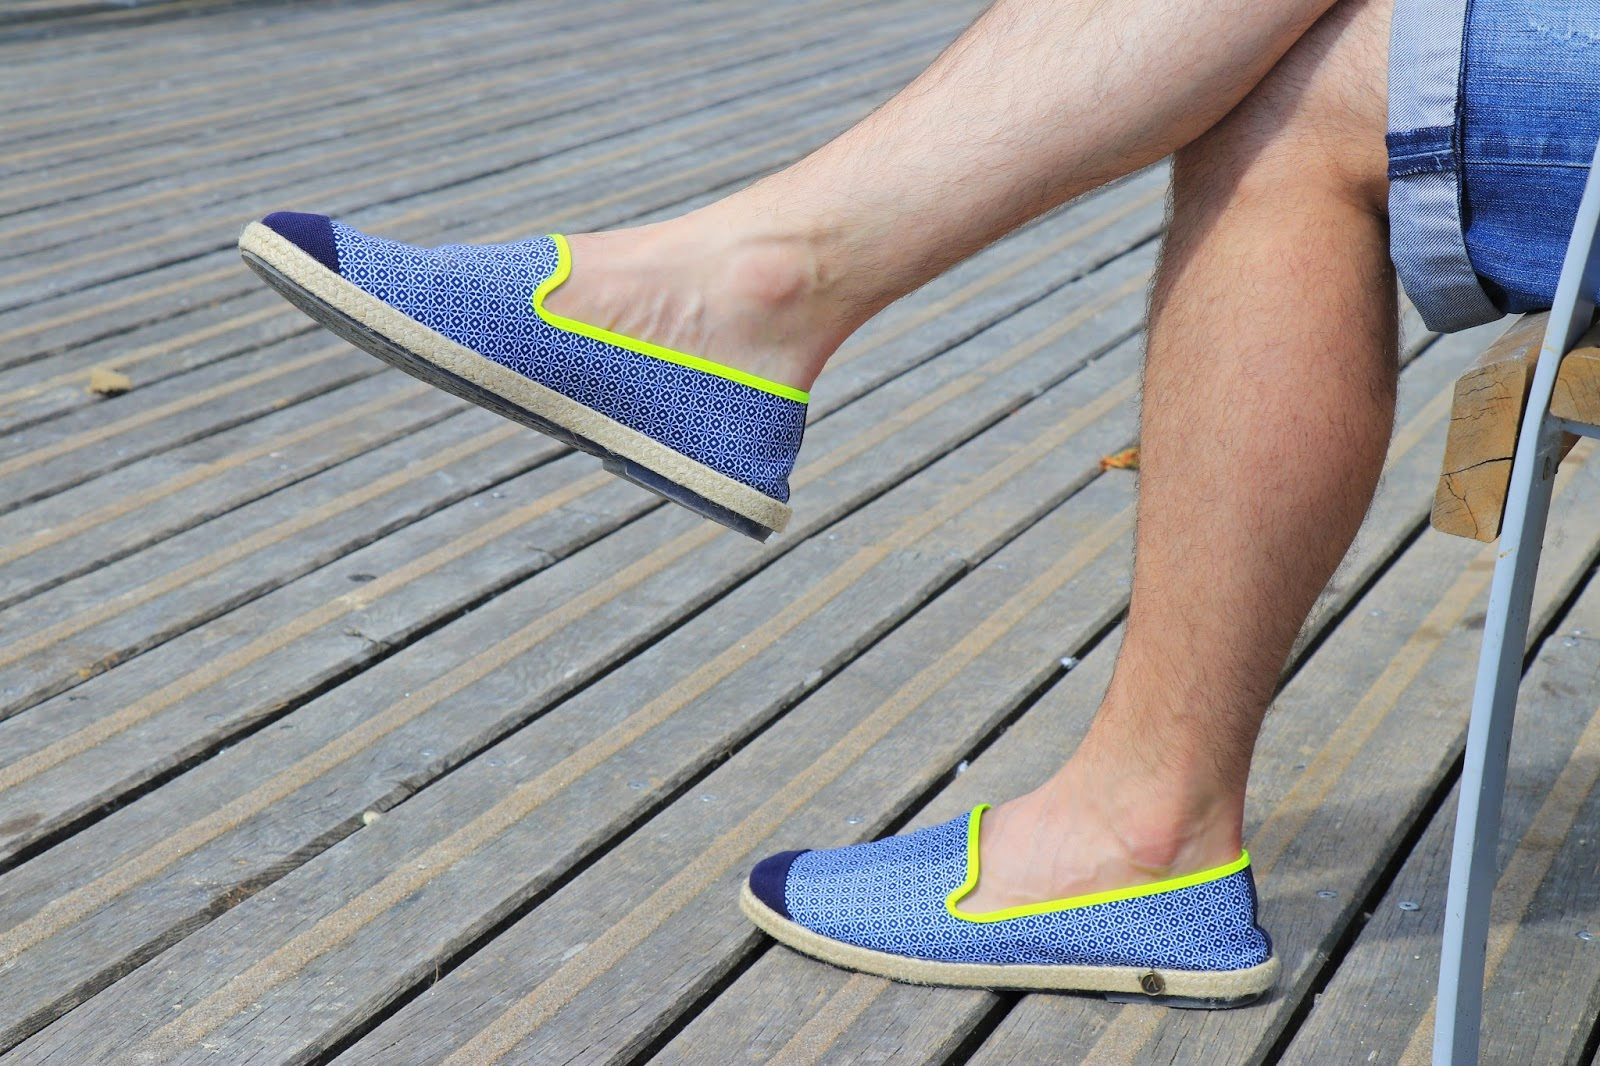 les gommettes de melo gommette ambassadeurparly2 c&a top perroquet nouvelle collection été angarde espadrilles lin made in france look mode amoureux love